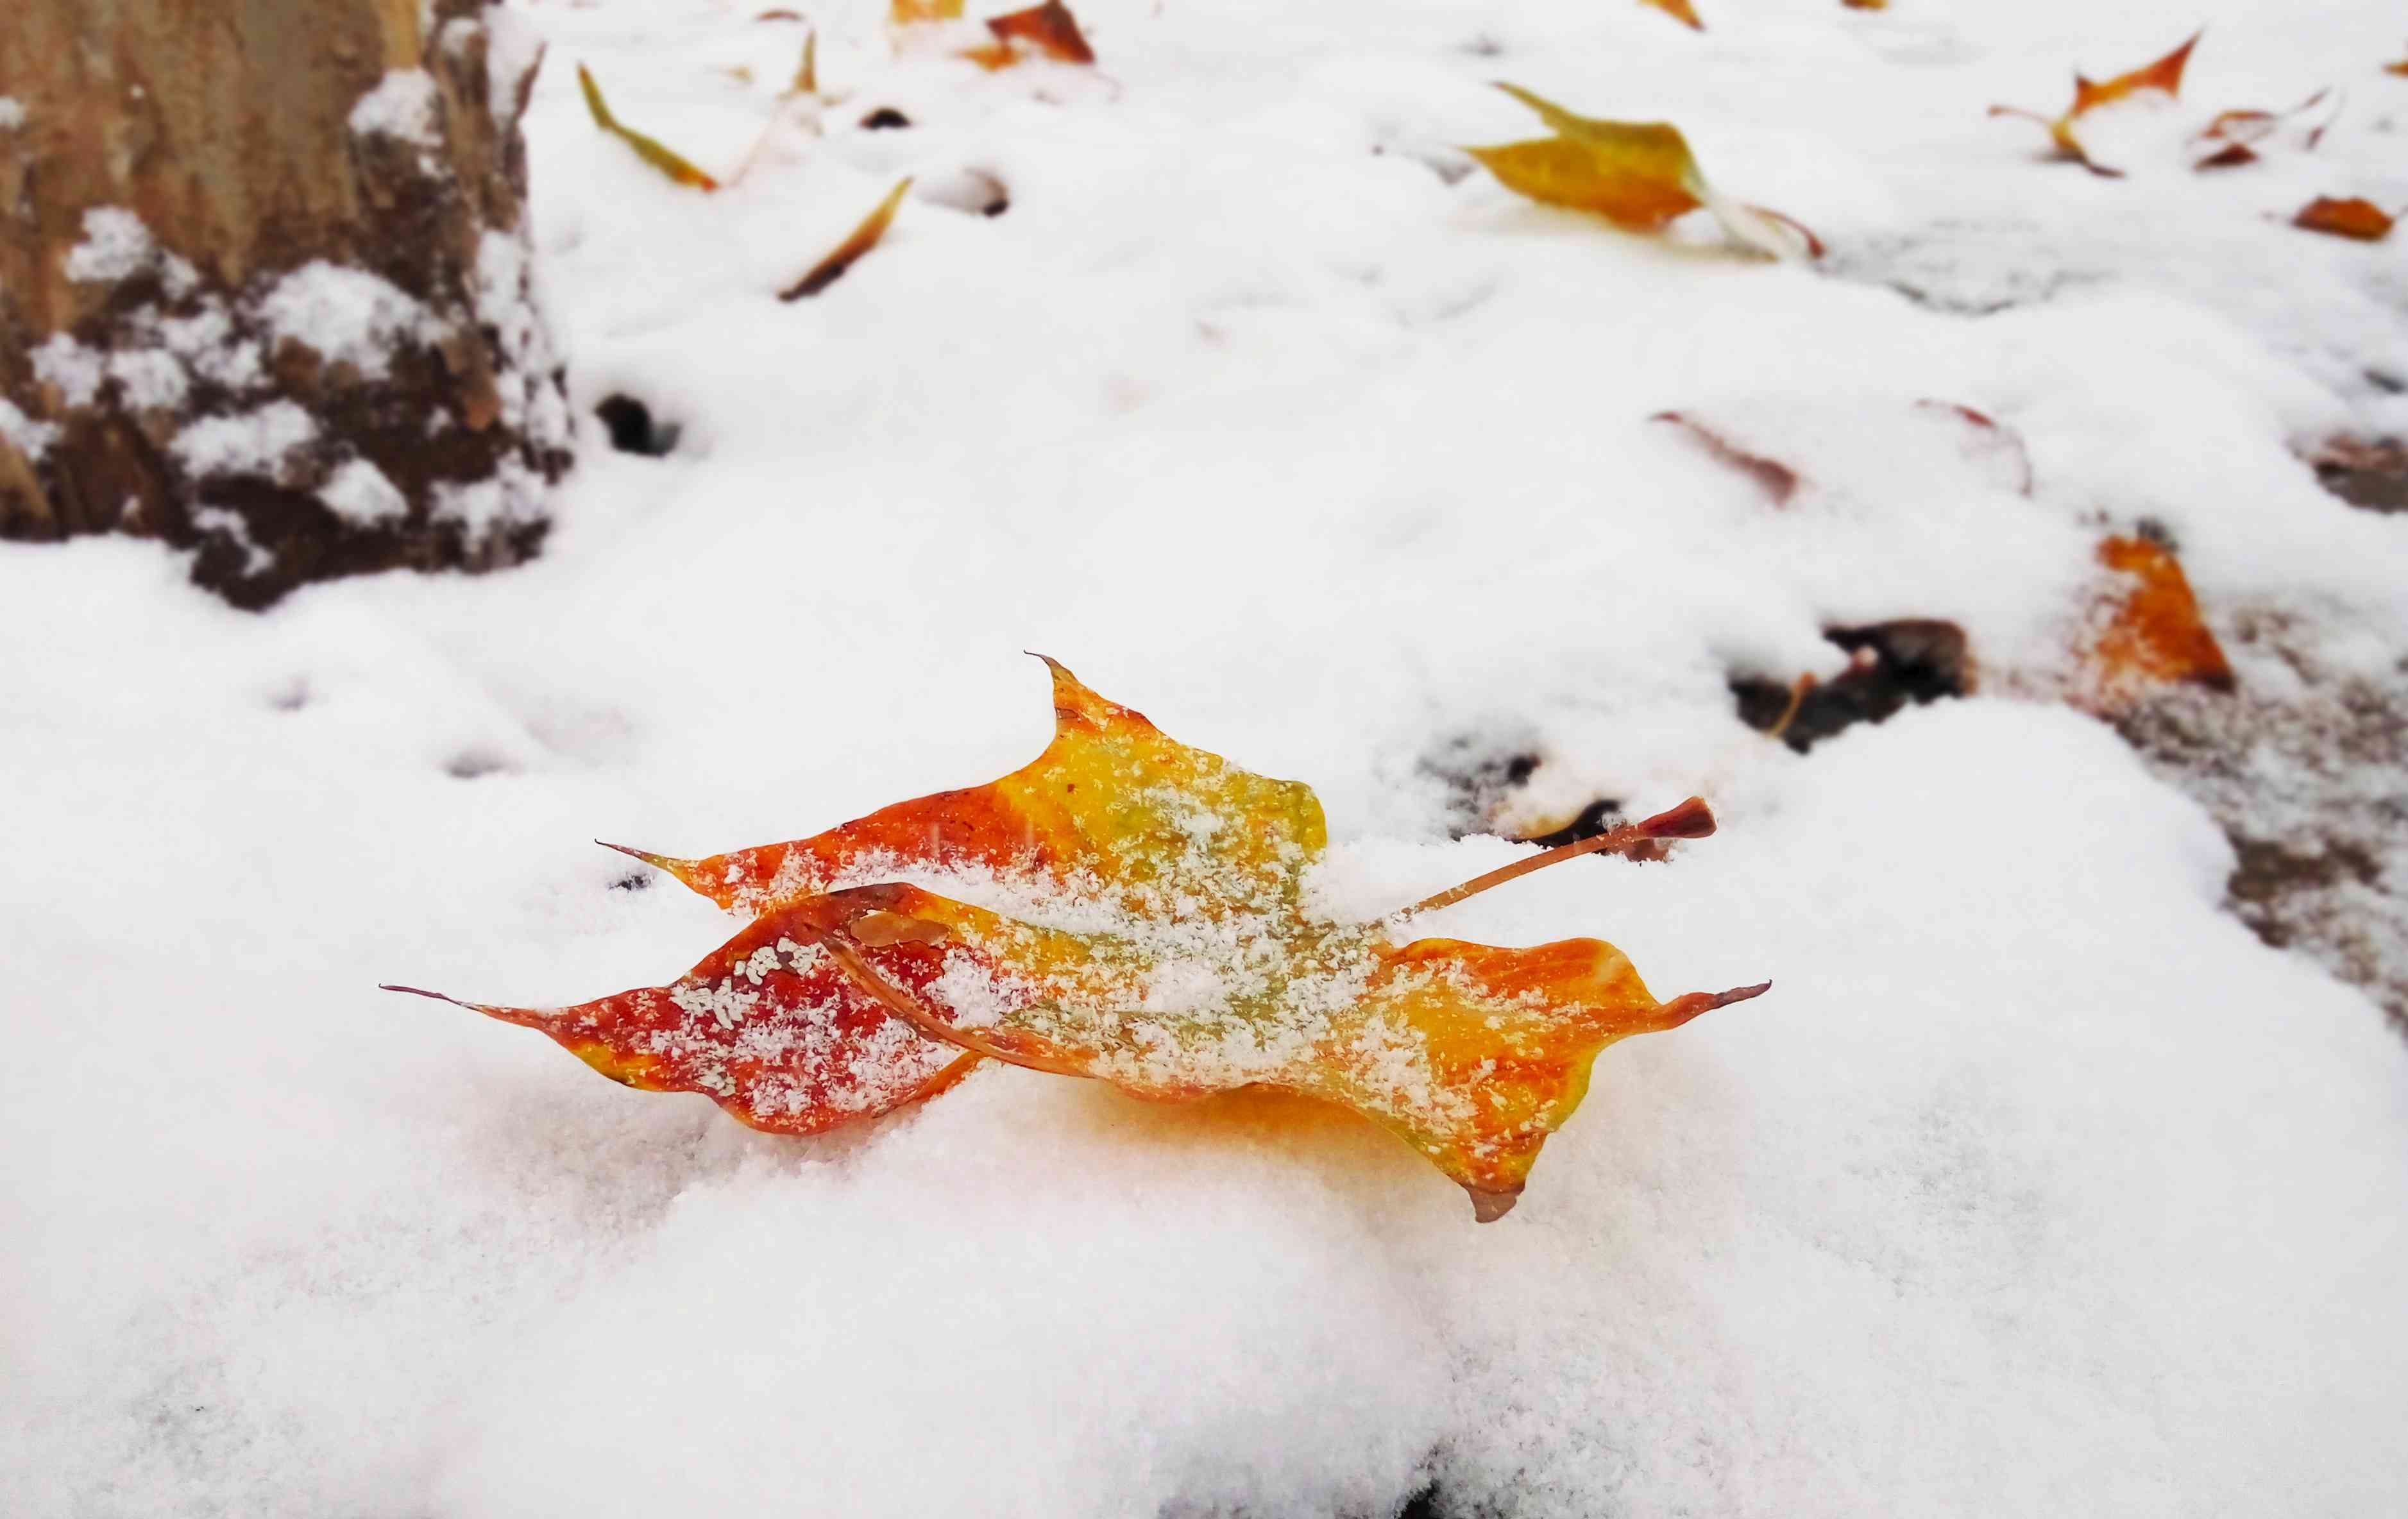 a-leaf-in-the-snow.jpg